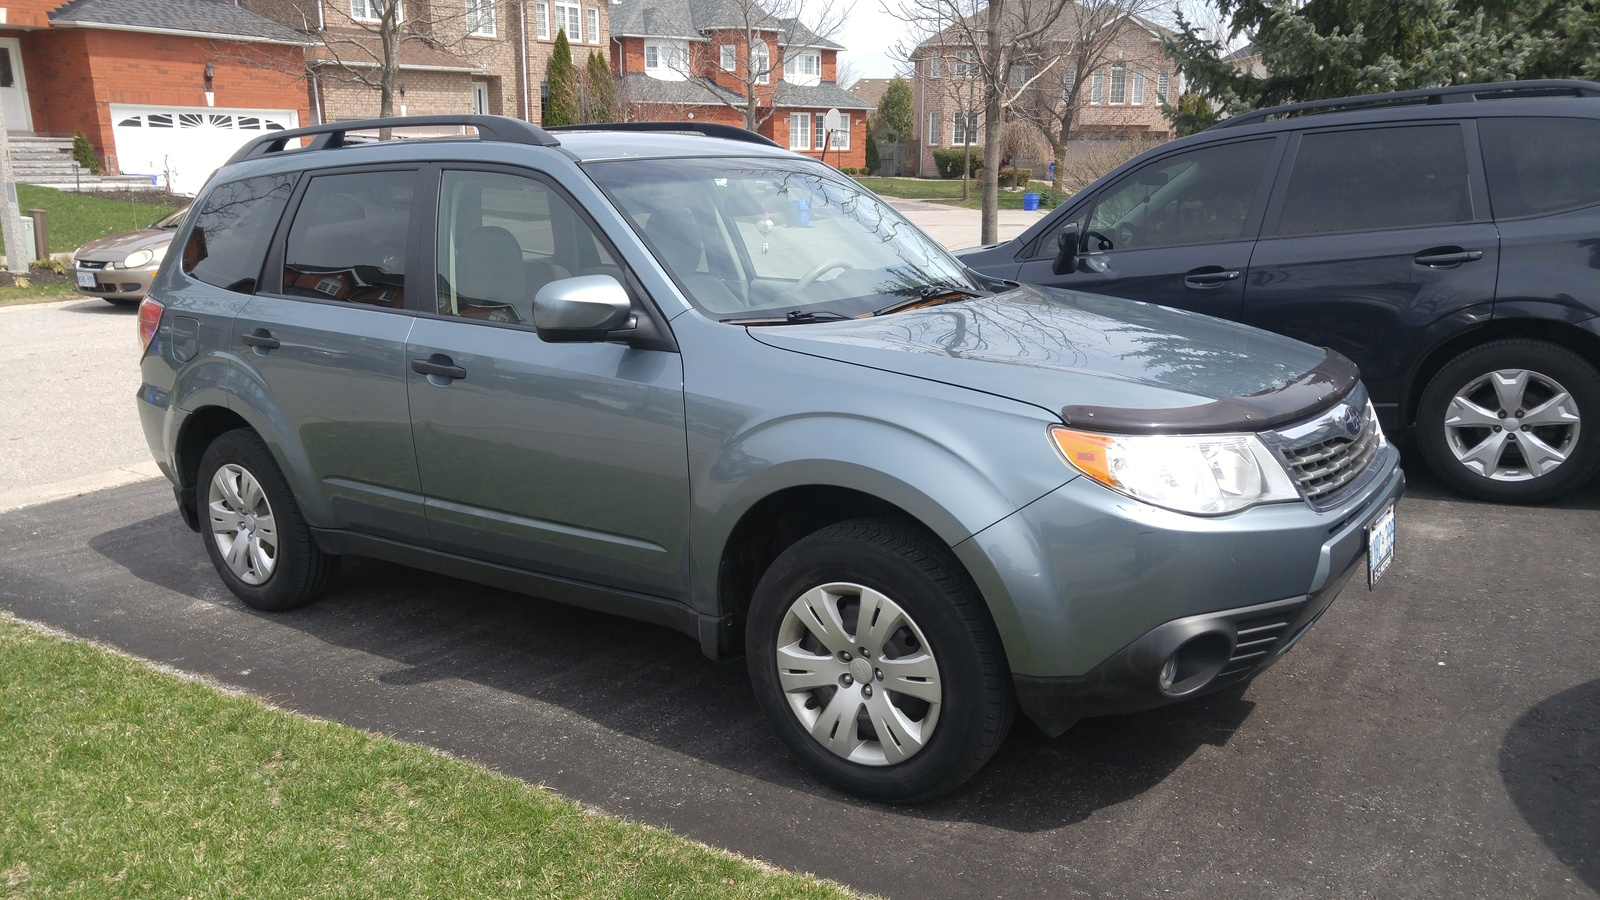 Subaru Forester Questions - Could I sell my used car over this ...